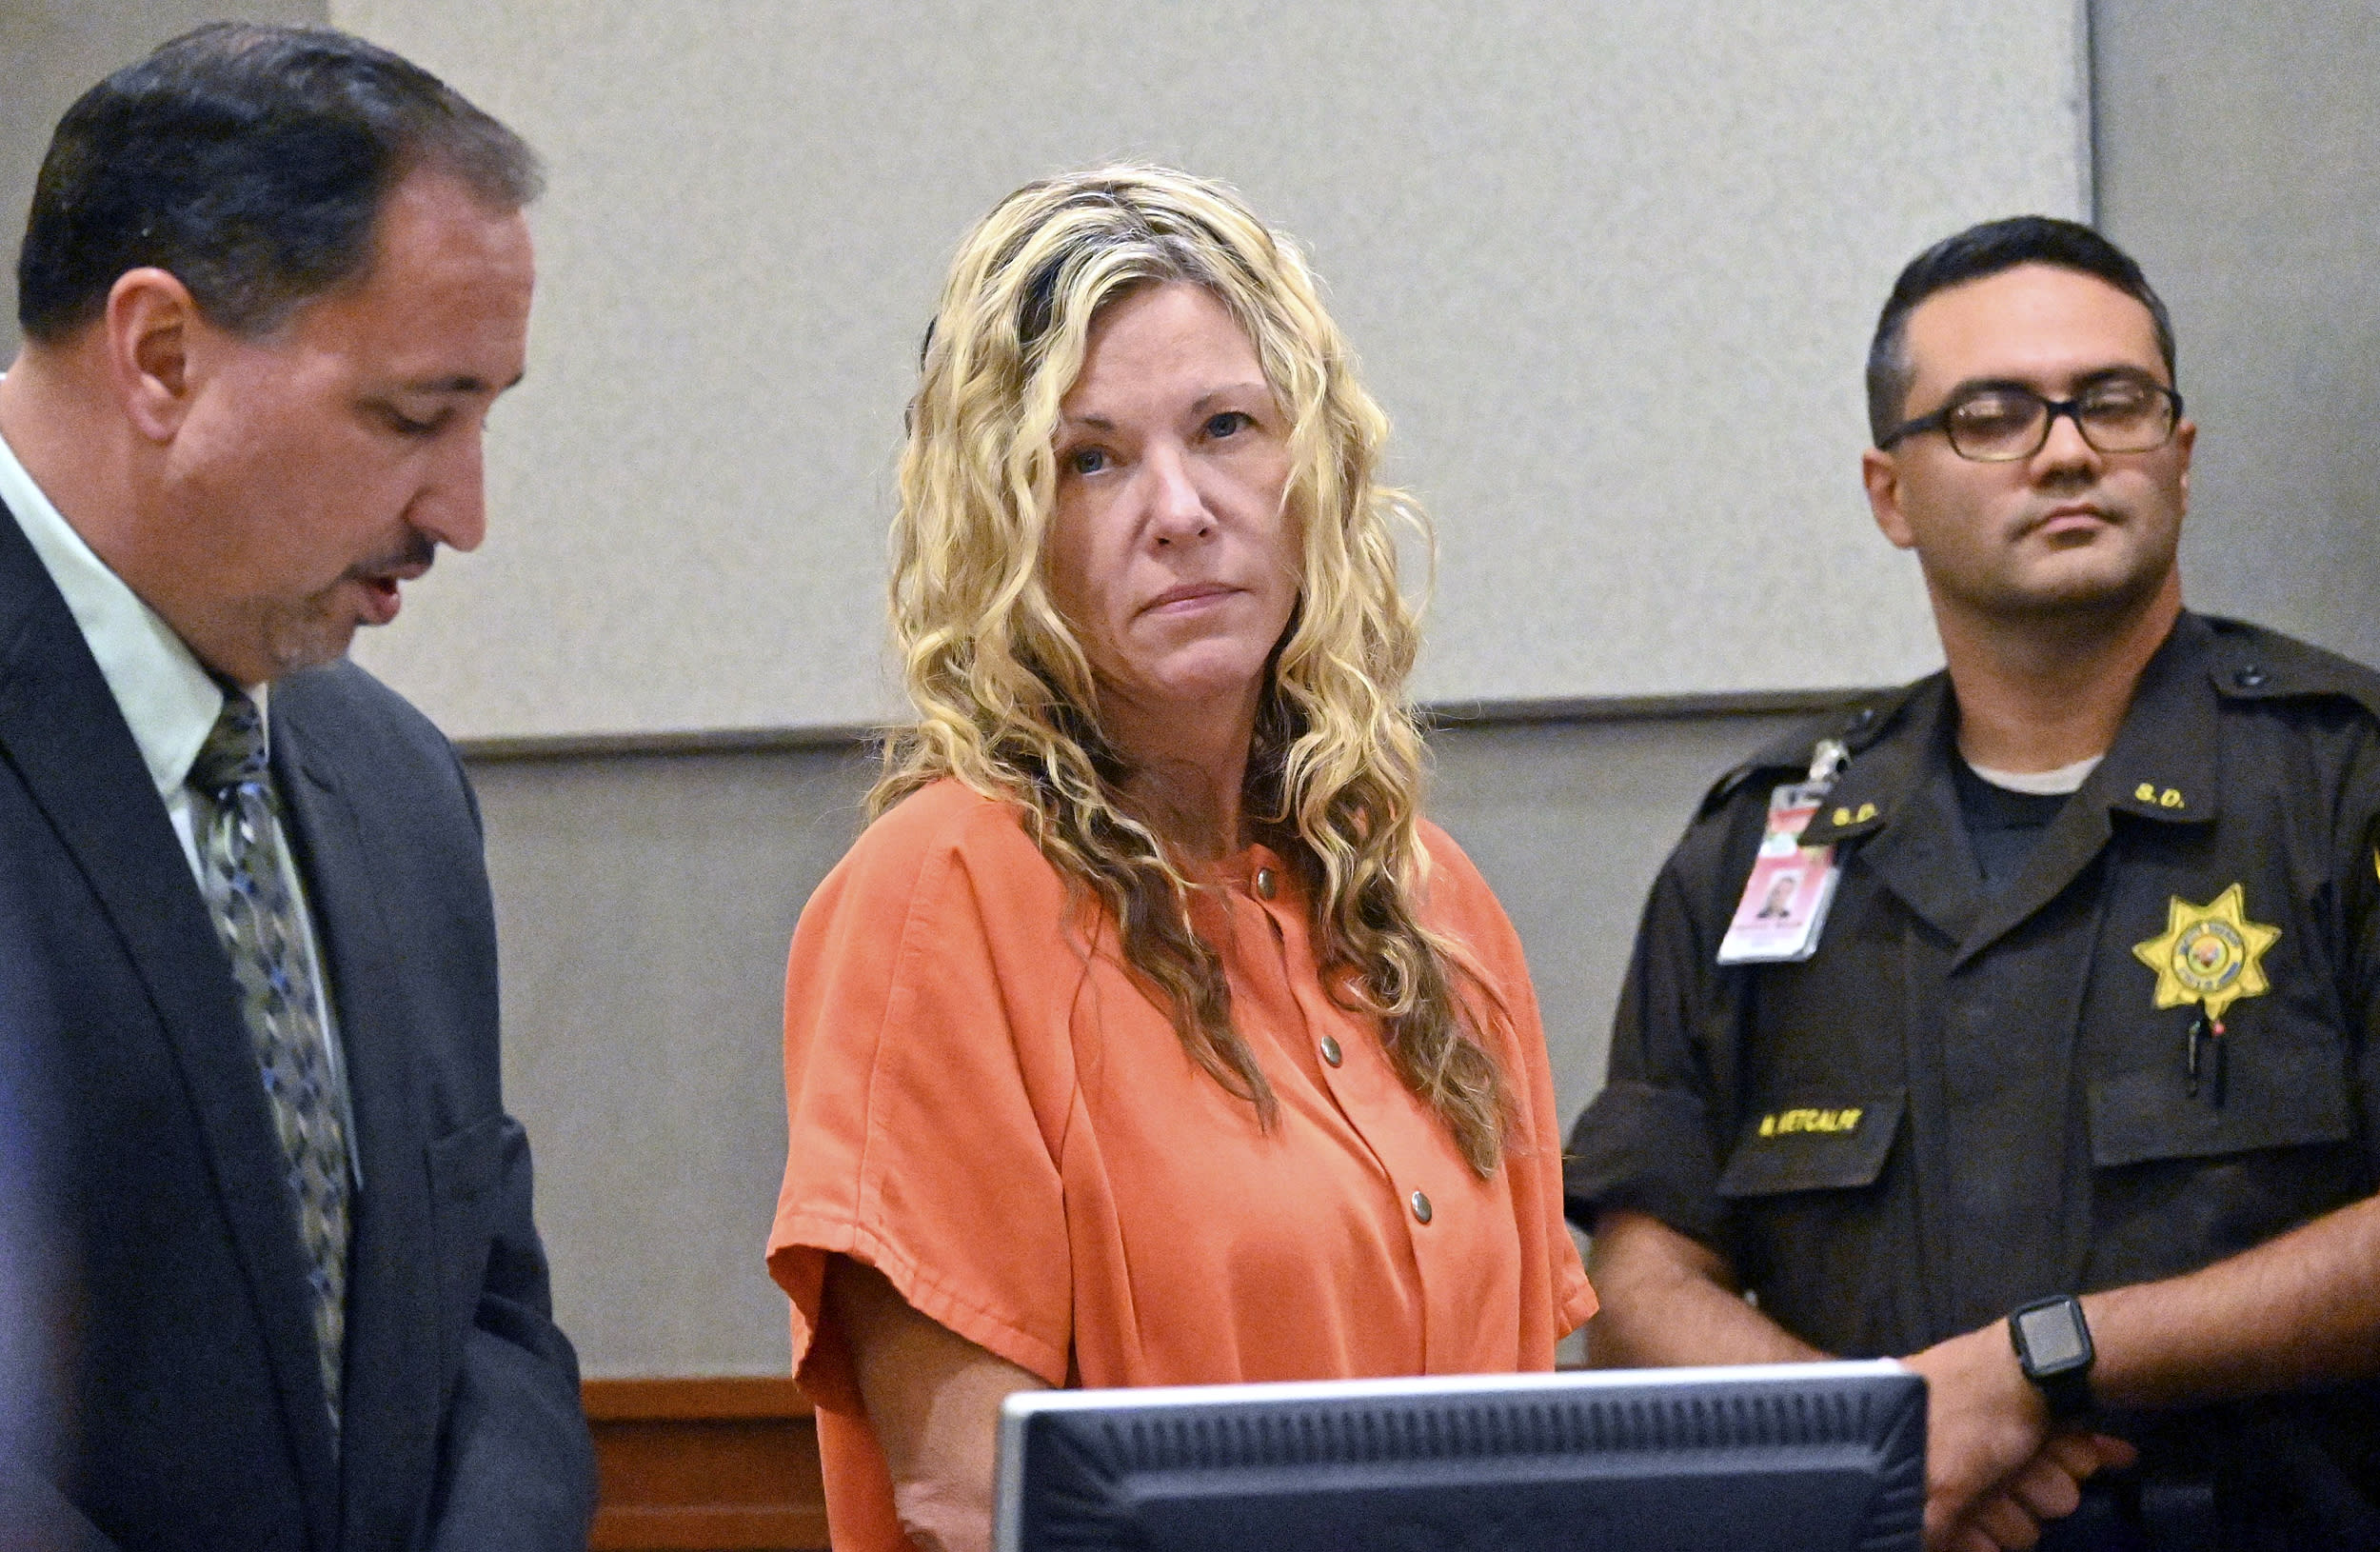 MT: Lori Vallow to appear in court for bond hearing